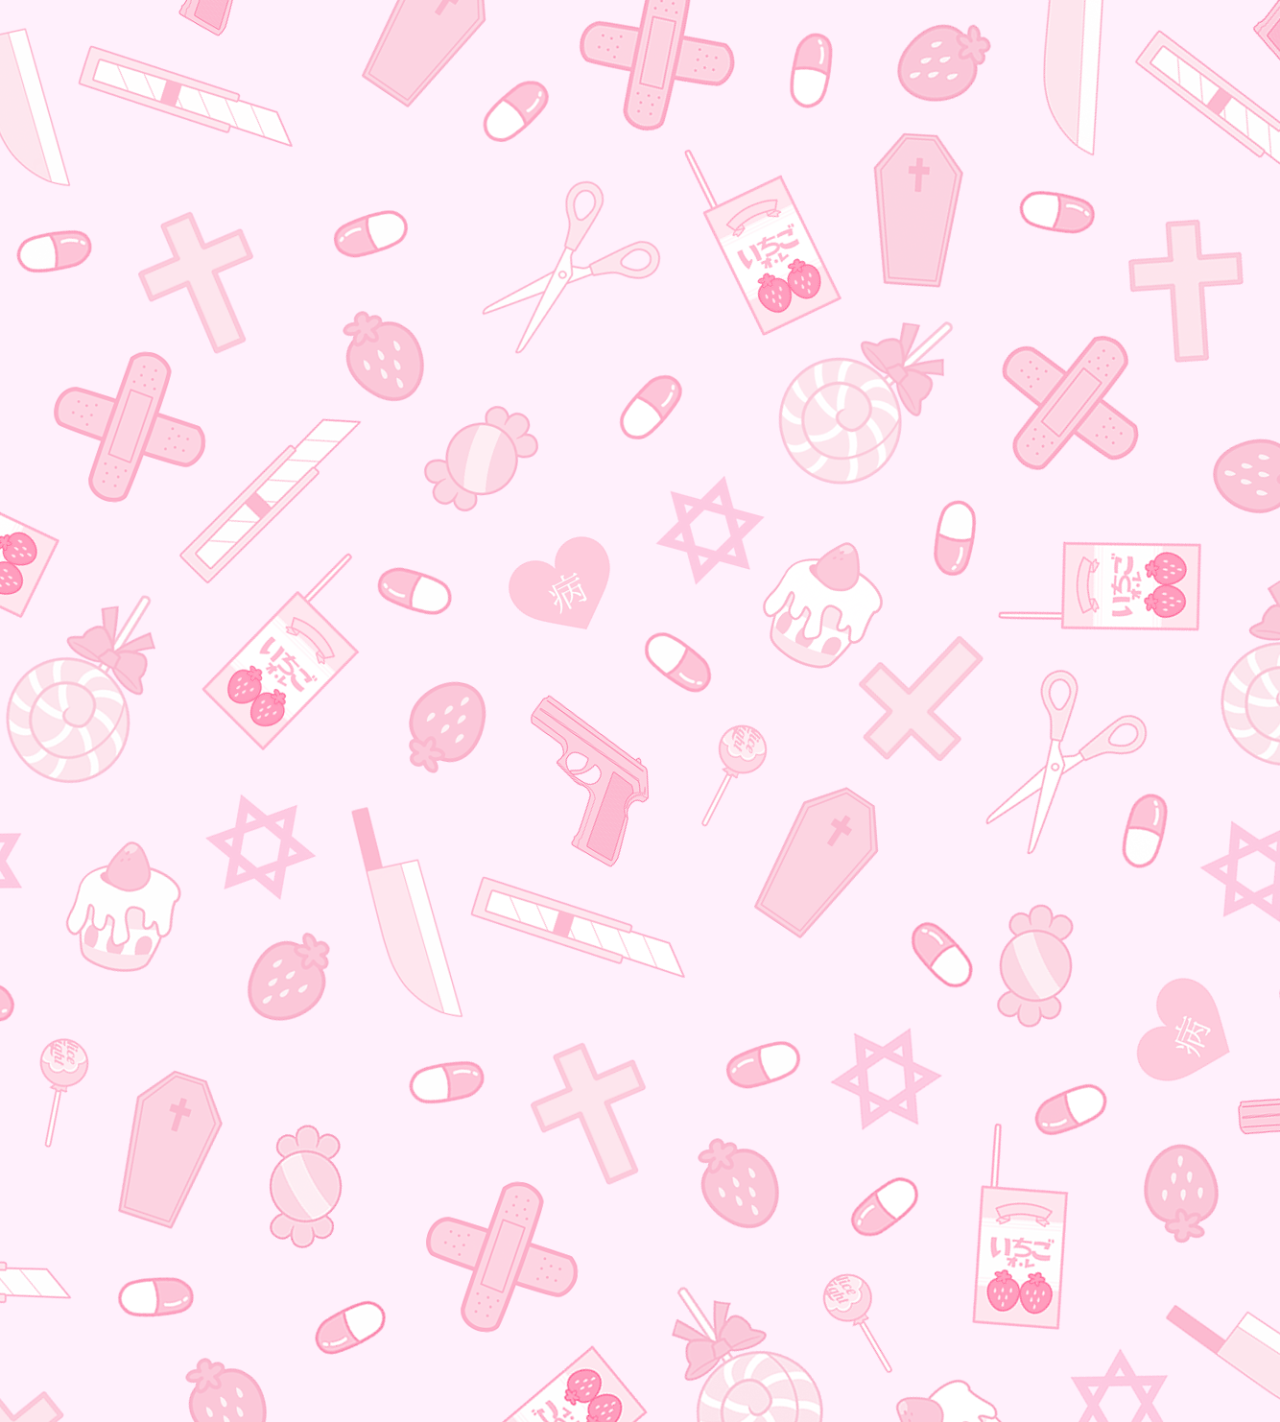 Japanese Kawaii Aesthetic Wallpaper